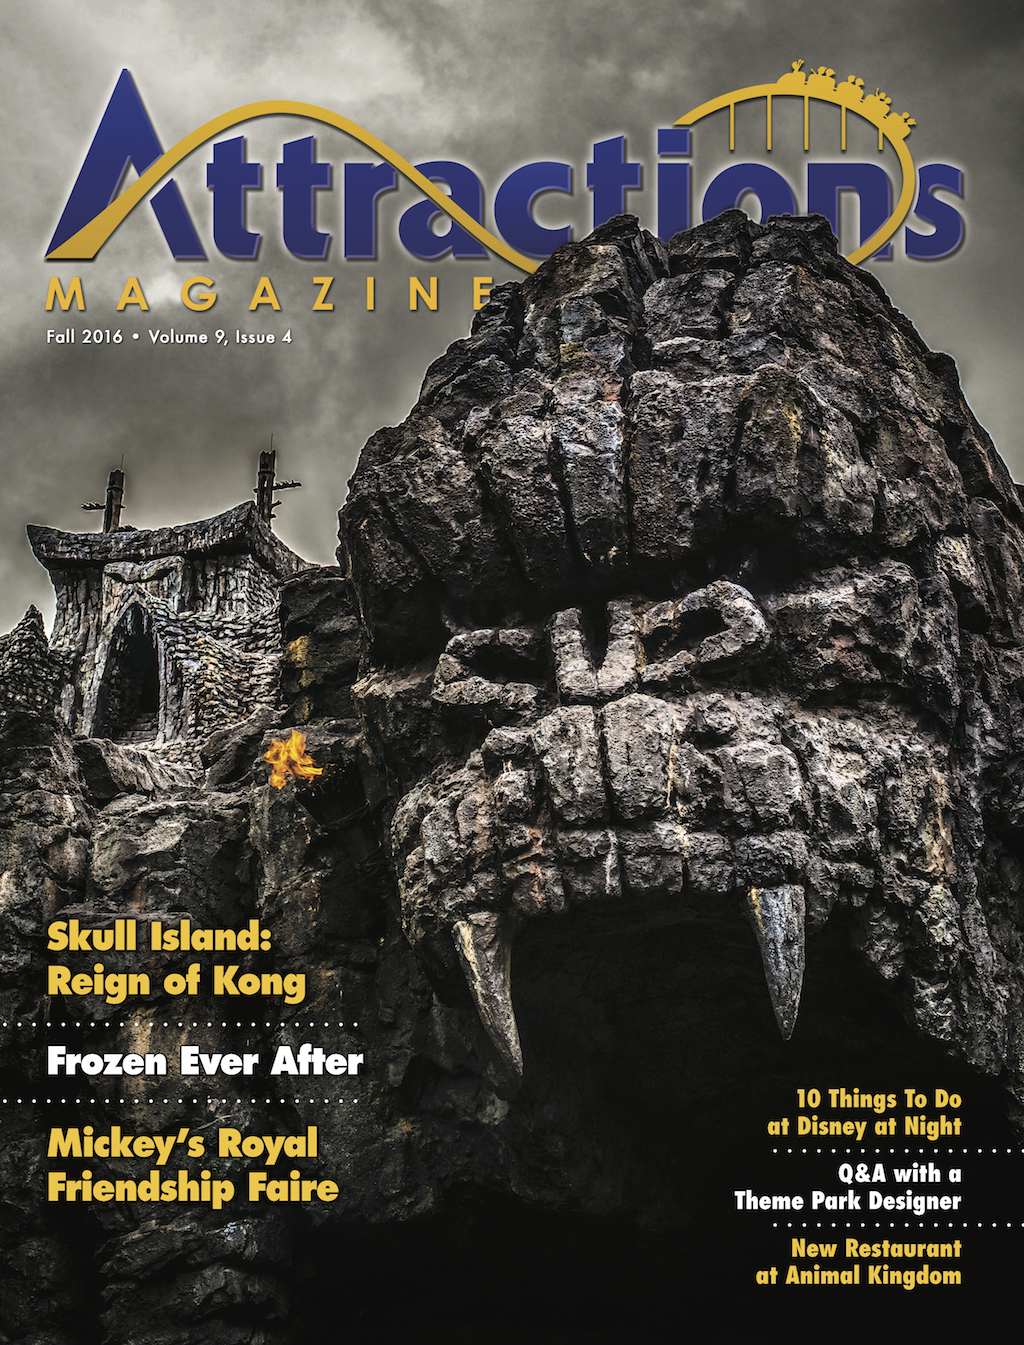 Fall 2016 Cover featuring Skull Island